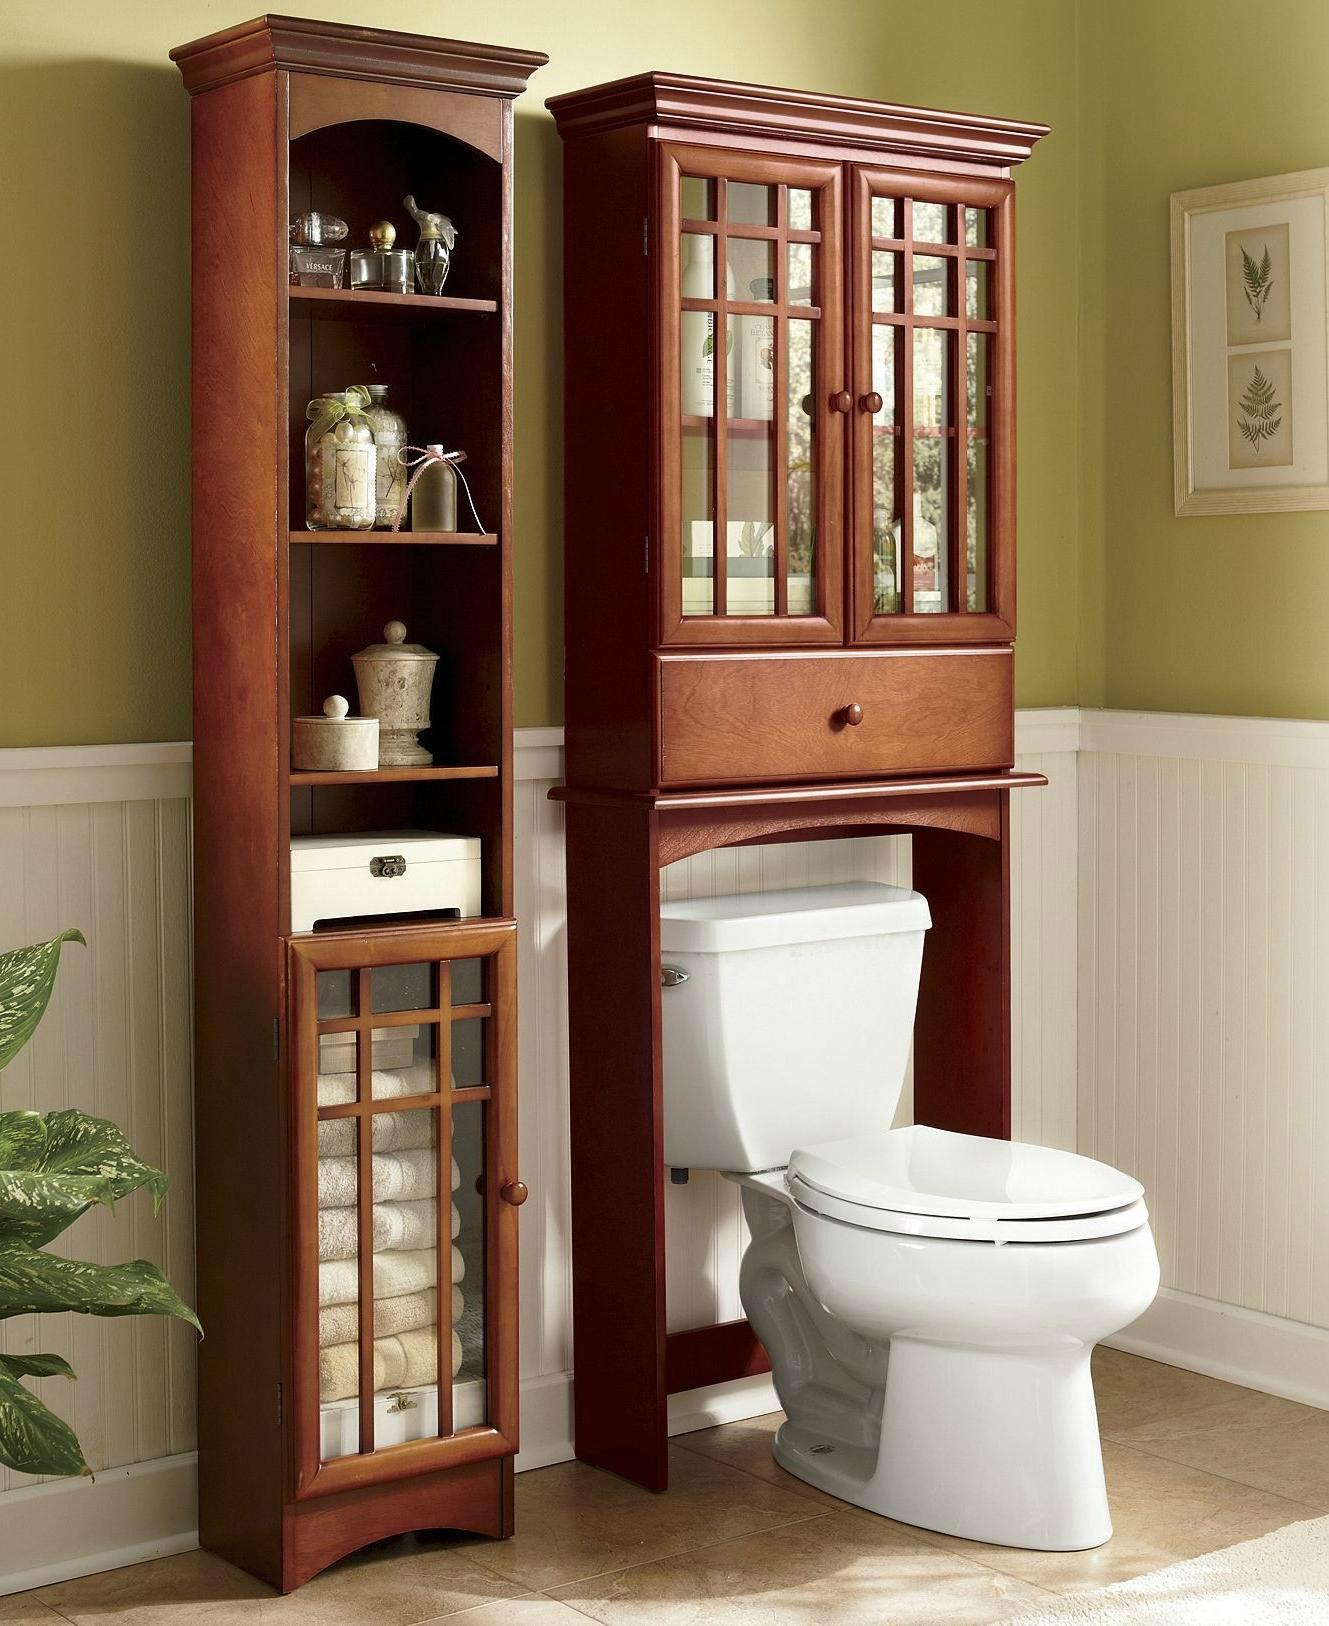 bathroom shelving unit space savers over the toilet storage wd 4138 4137 mighty taiwan